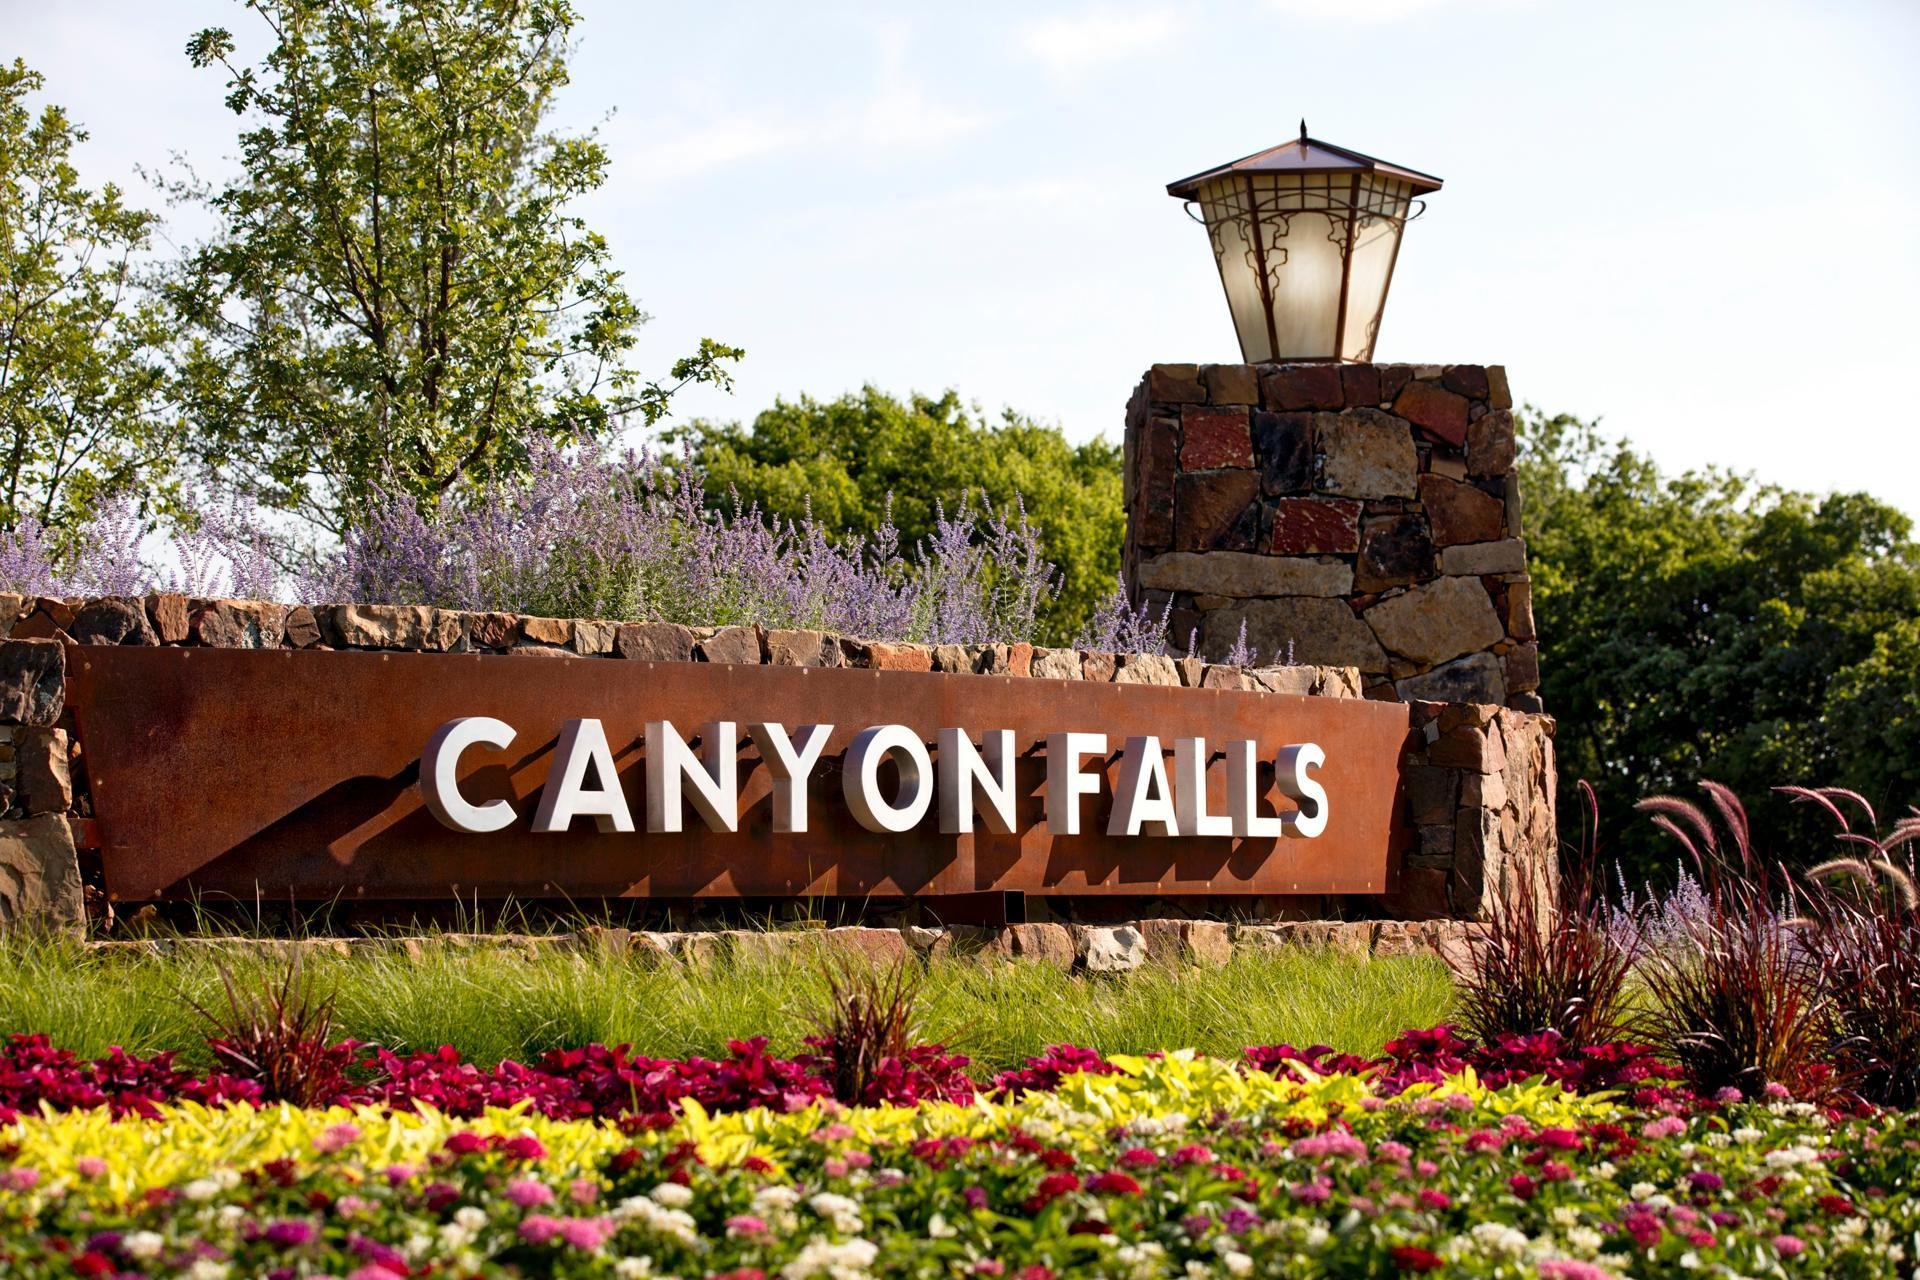 The Canyon Falls Entrance